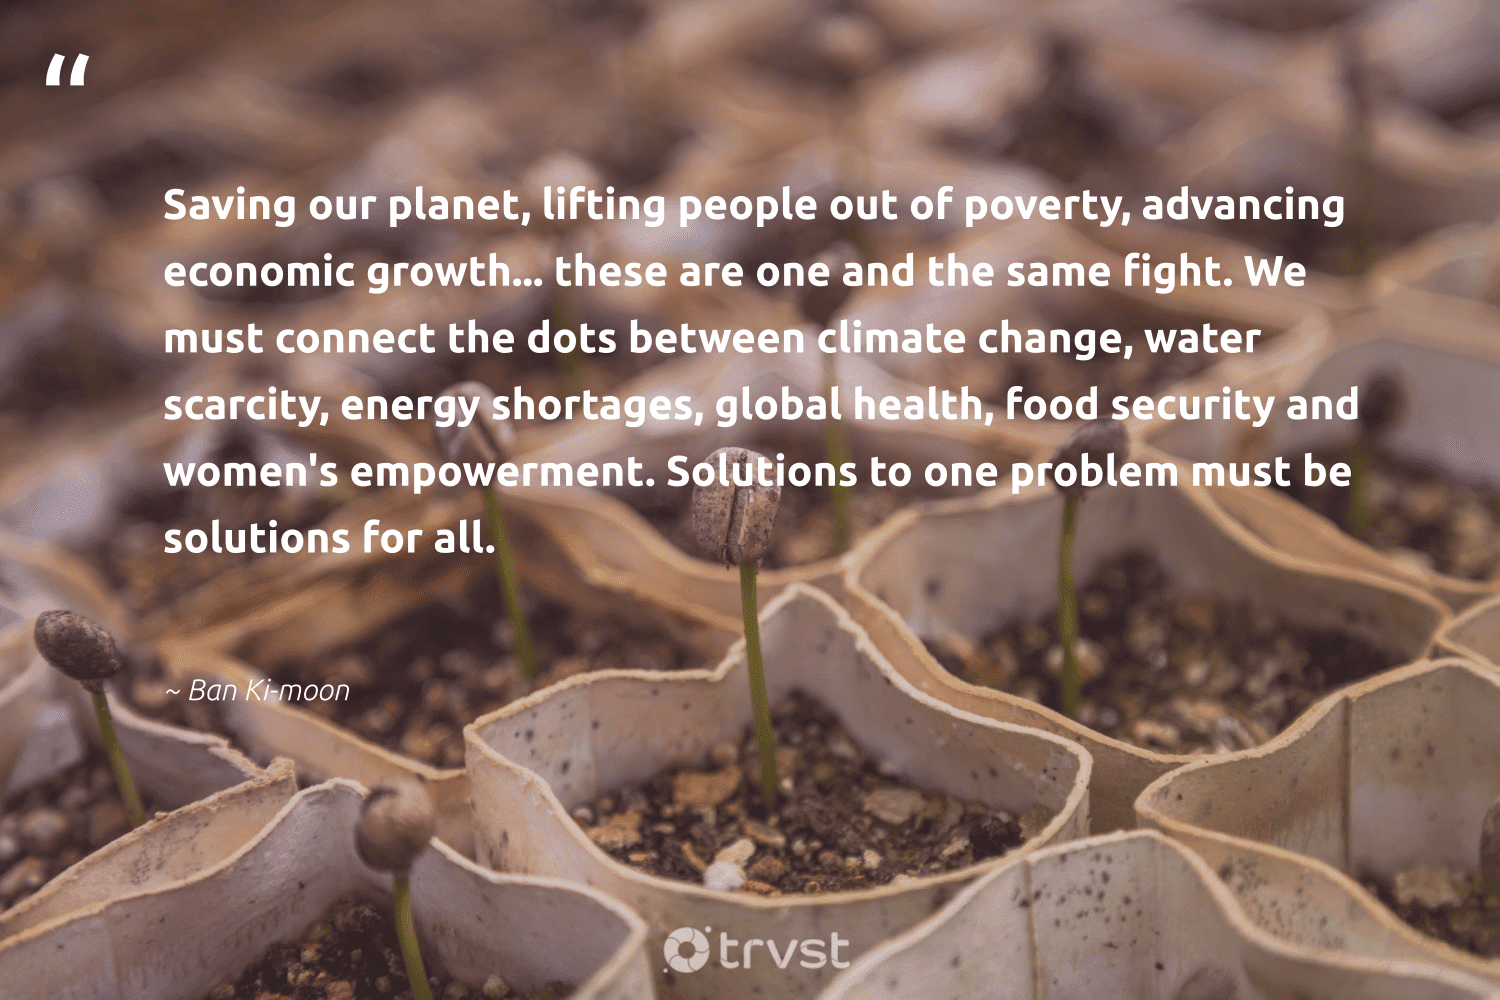 """""""Saving our planet, lifting people out of poverty, advancing economic growth... these are one and the same fight. We must connect the dots between climate change, water scarcity, energy shortages, global health, food security and women's empowerment. Solutions to one problem must be solutions for all.""""  - Ban Ki-moon #trvst #quotes #climatechange #energy #water #planet #climate #womensempowerment #empowerment #poverty #food #health"""